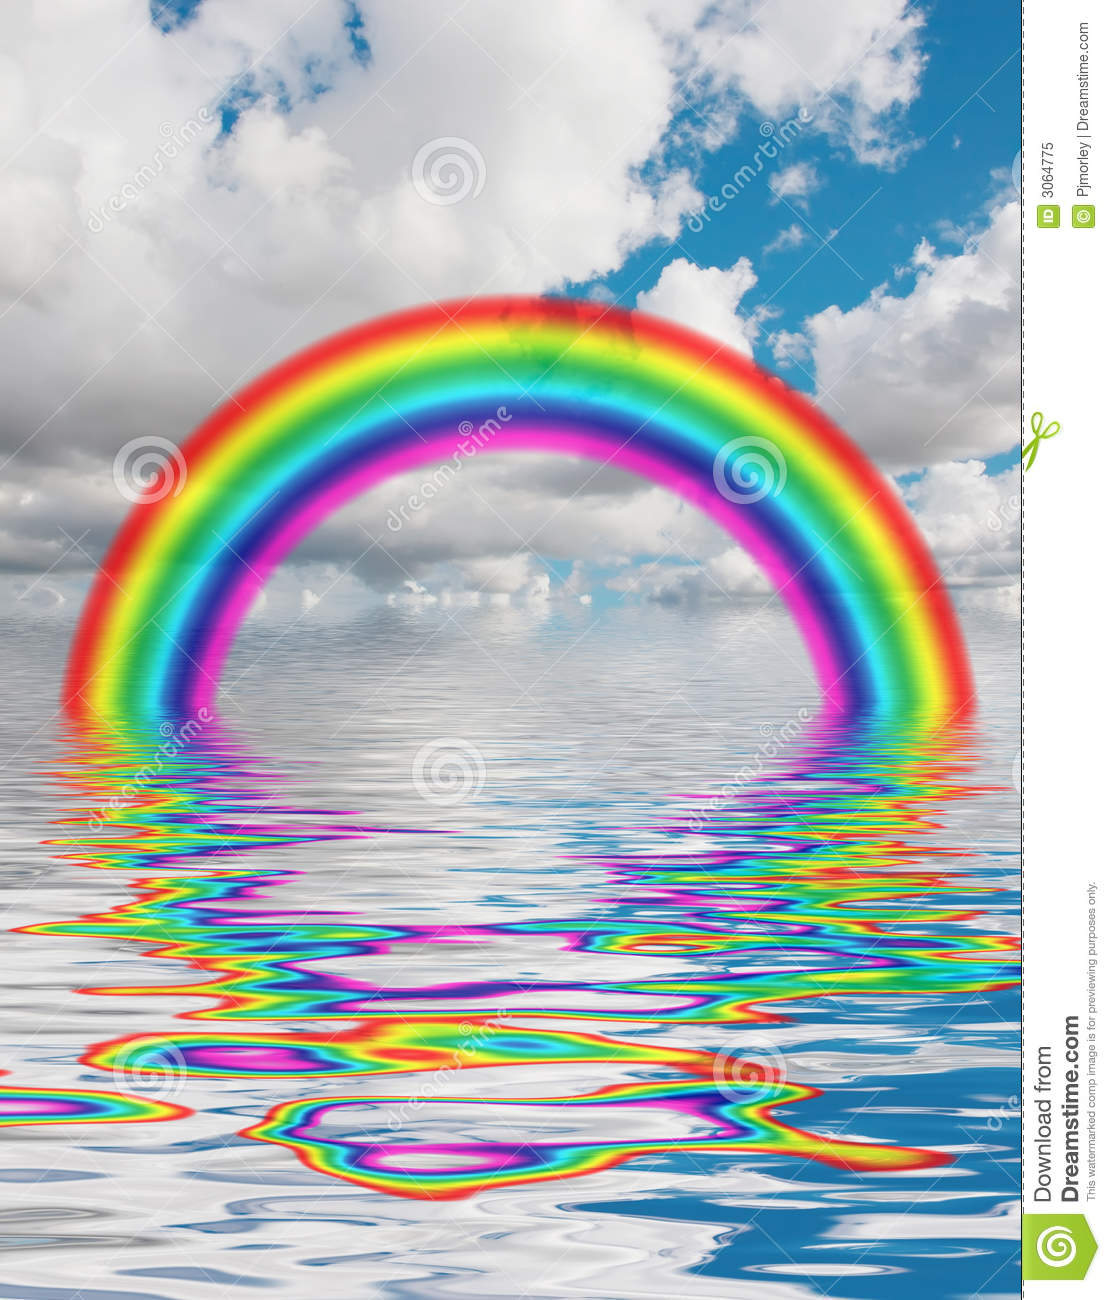 Rainbow In Water Royalty Free Stock Photo - Image: 3064775